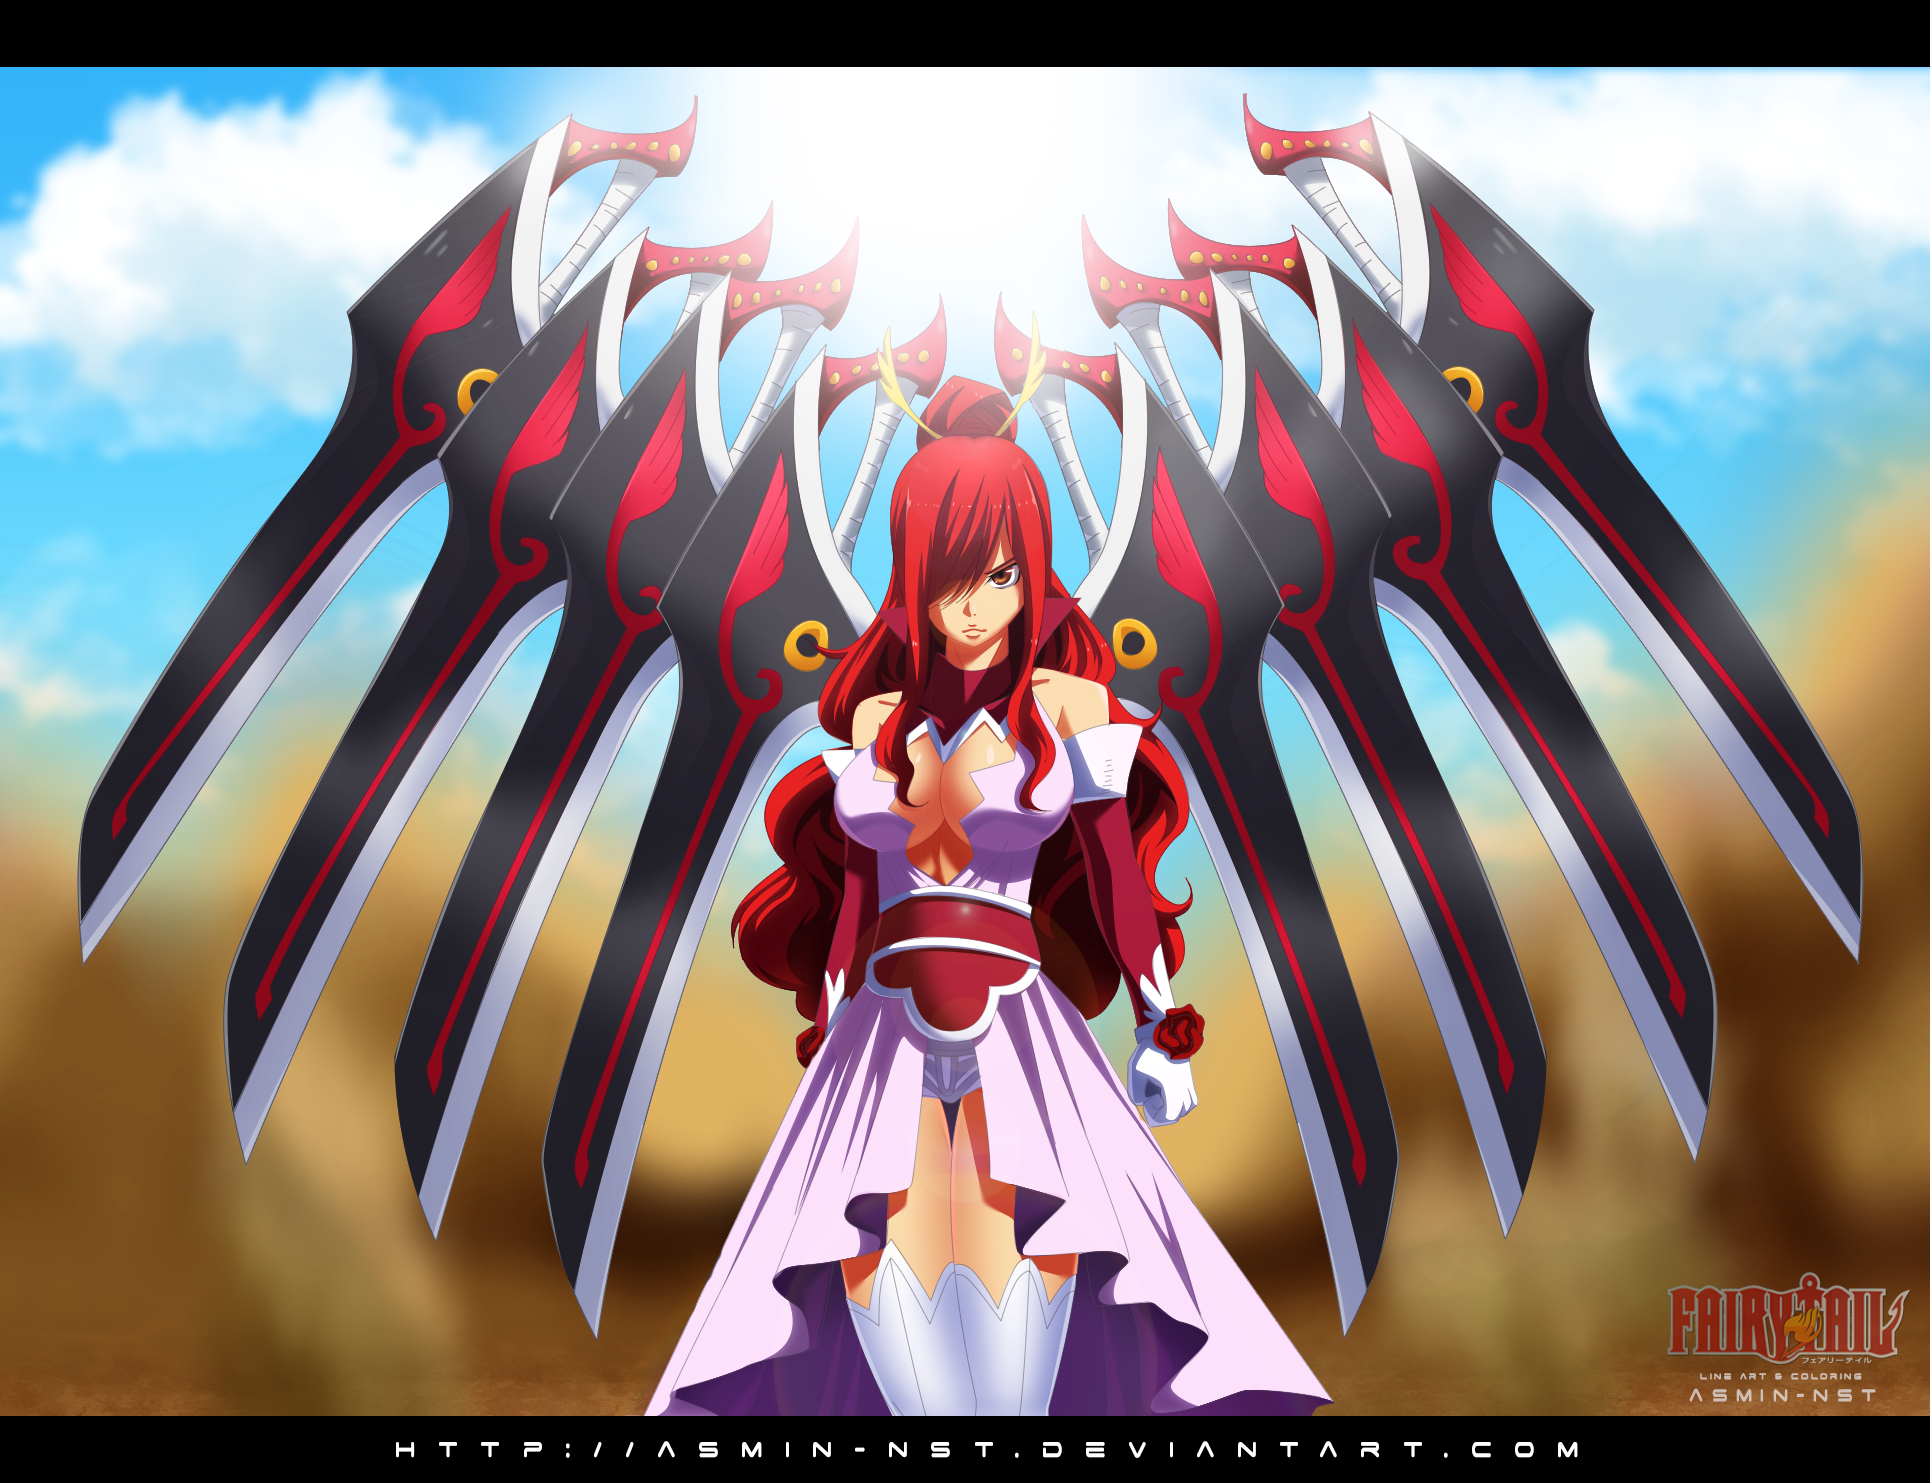 Fairy Tail 431 Erza Form By Asmin-nst